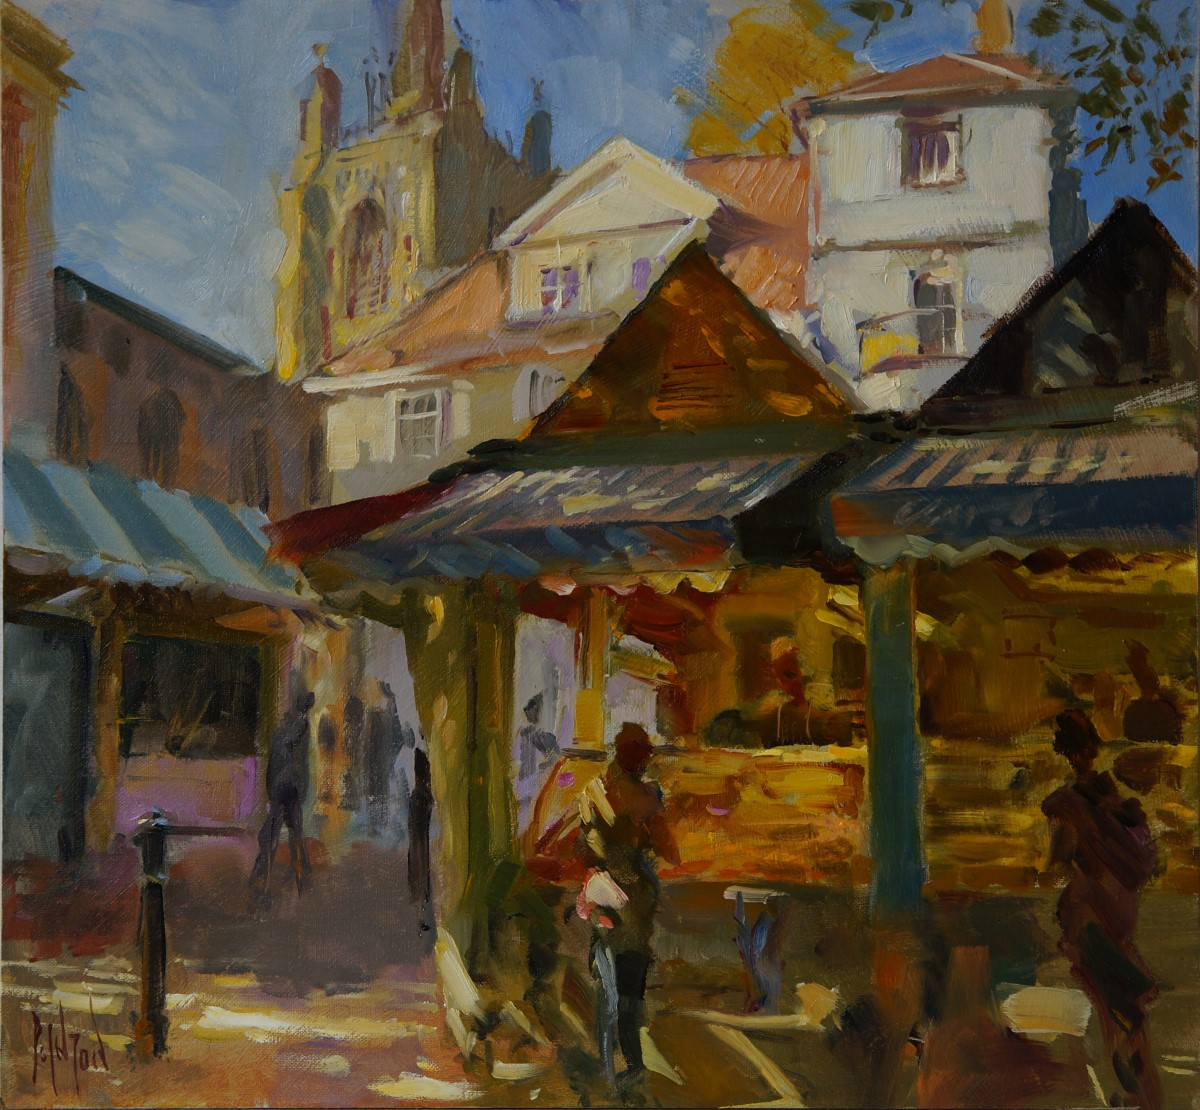 Artist Rob Pointon, 'Diagonal Light on the Seafood Stalls', Norwich Market, Oil, 40x40cm, £650. Paint Out Norwich 2018